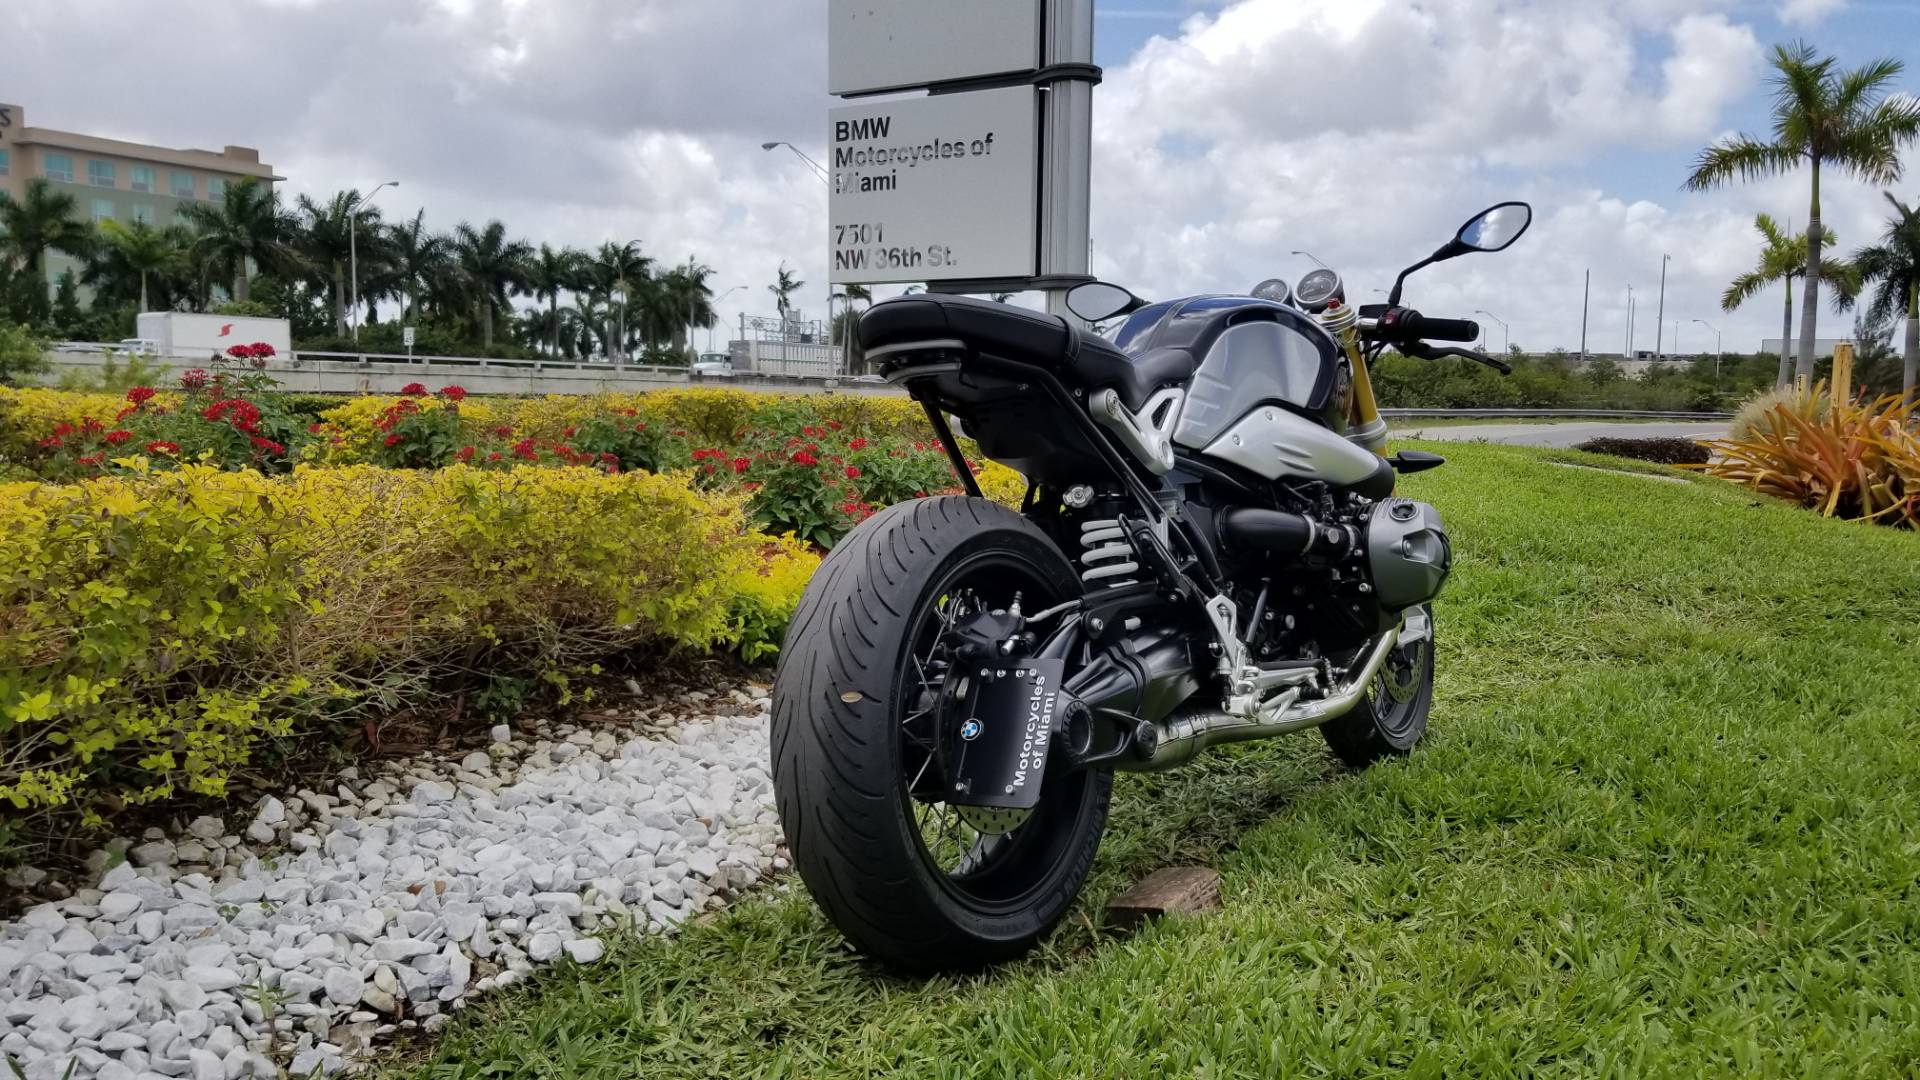 Used 2017 BMW R nine T For Sale, Pre owned BMW R nineT For Sale, BMW Motorcycle RnineT, BMW Motorcycles of Miami, Motorcycles of Miami, Motorcycles Miami - Photo 26